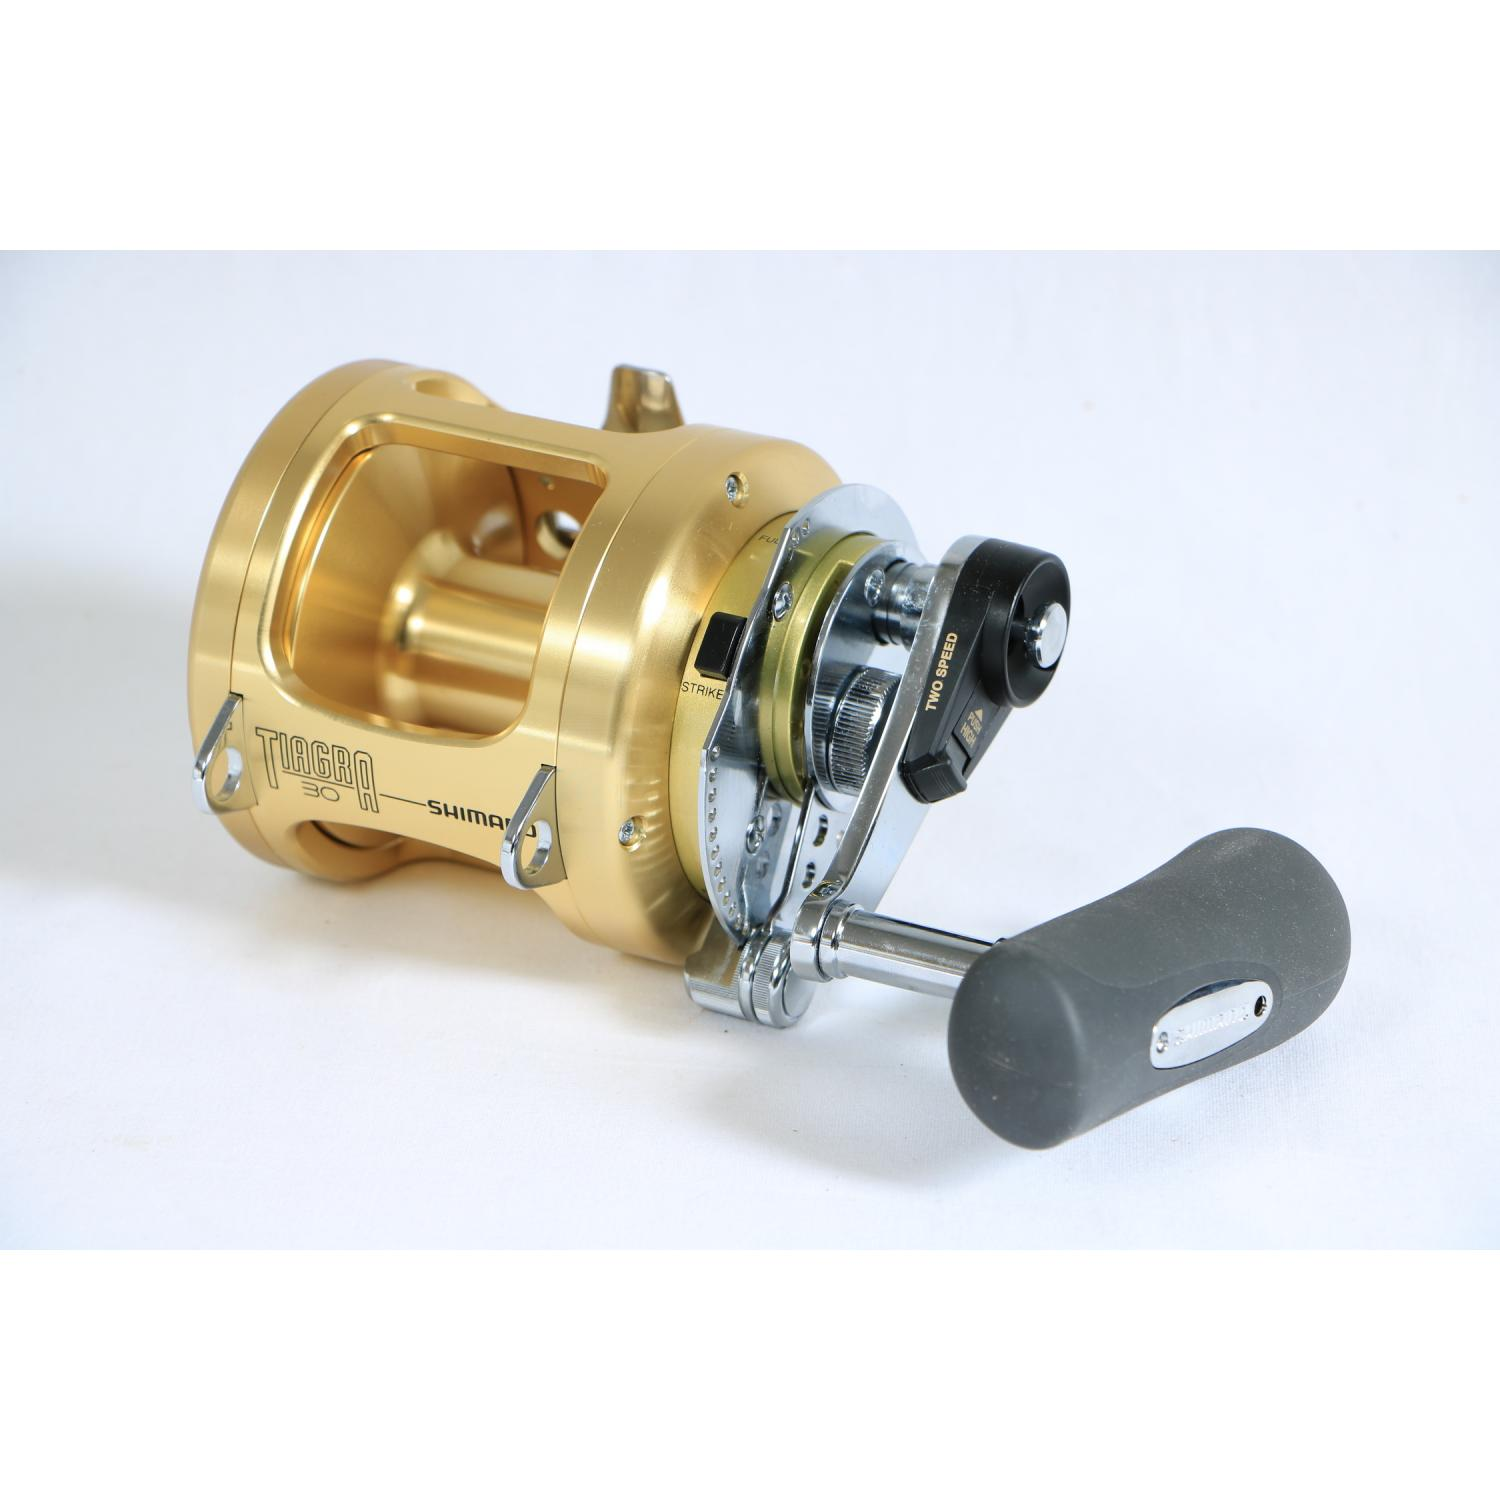 Shimano Tiagra 30 A Big Game Angelrolle 2-Gang Getriebe Bremssystem TI30A